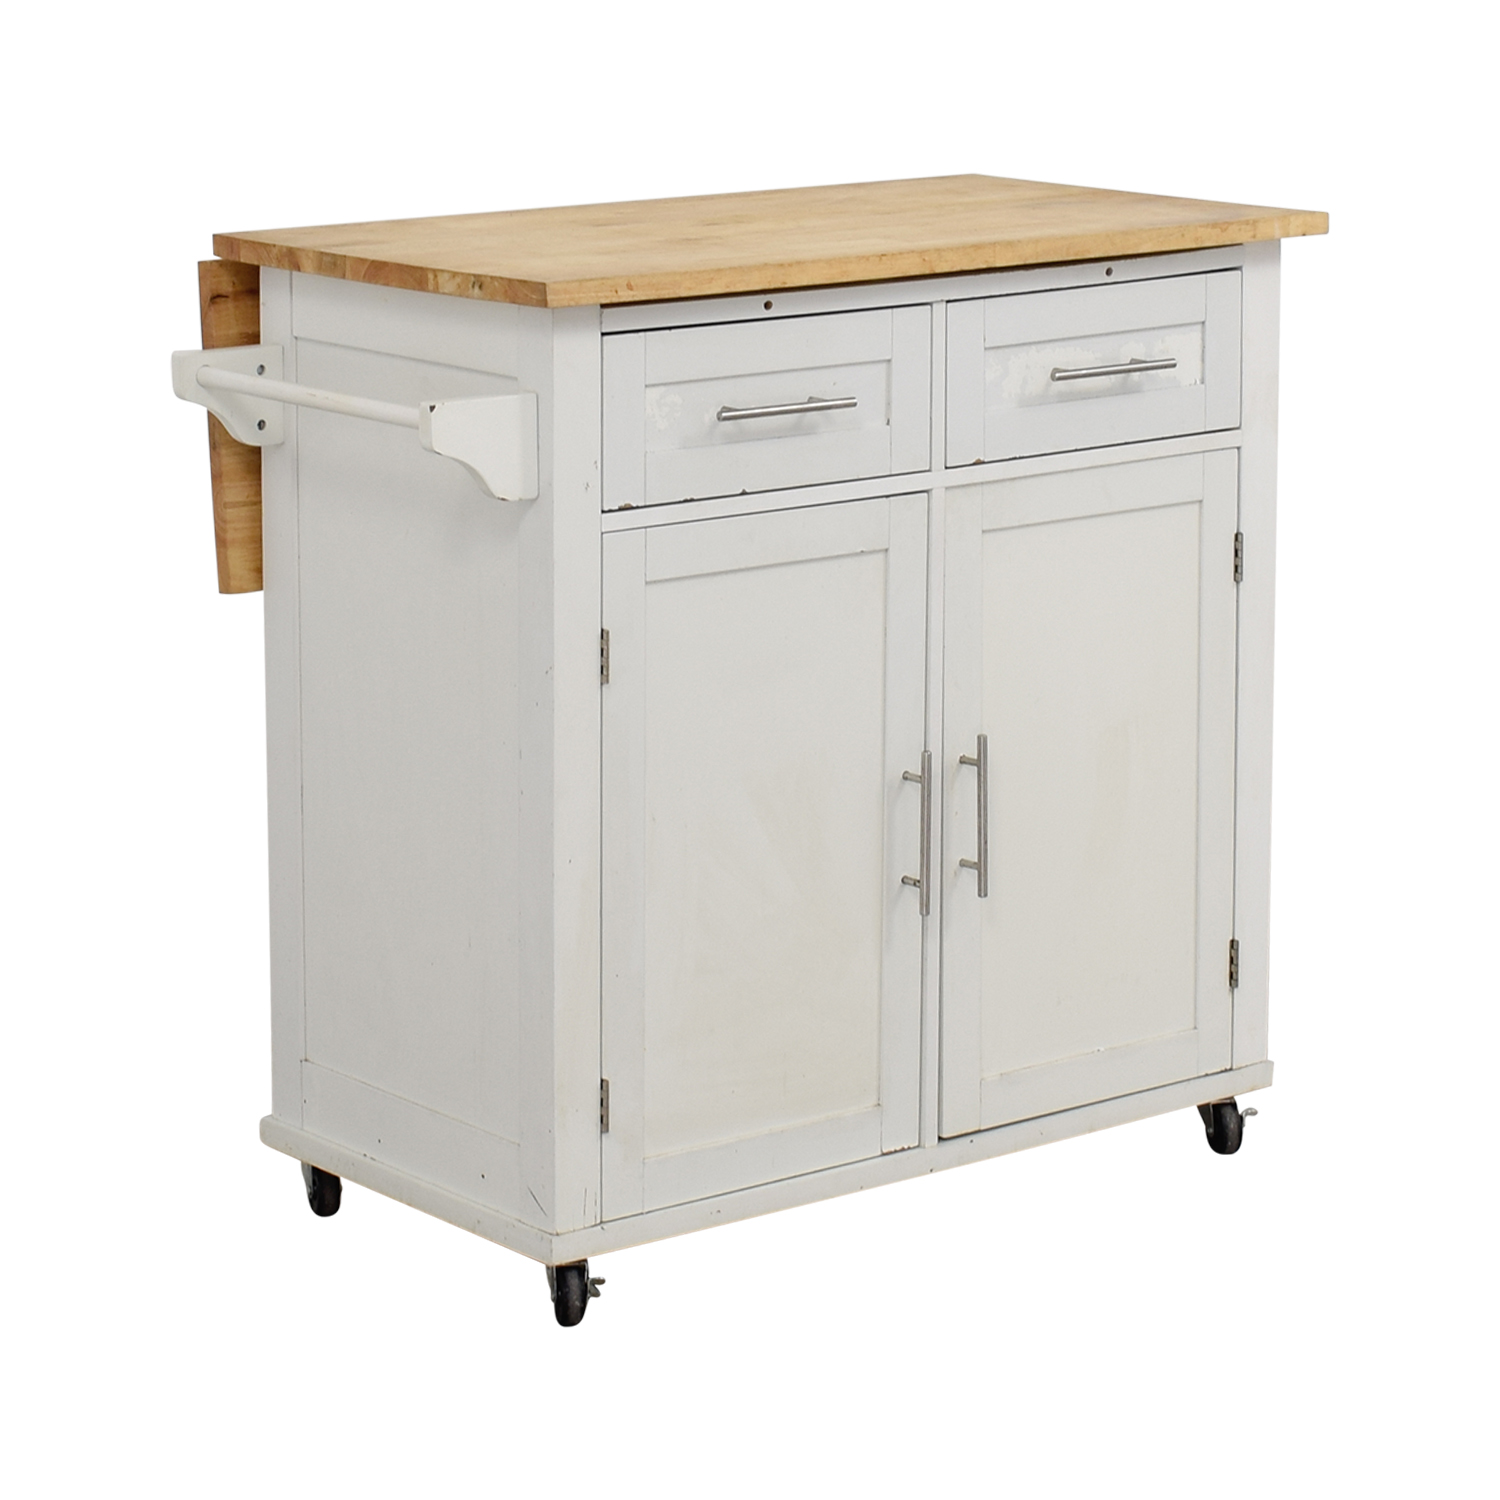 39 off target target white kitchen island tables Kitchen utility island